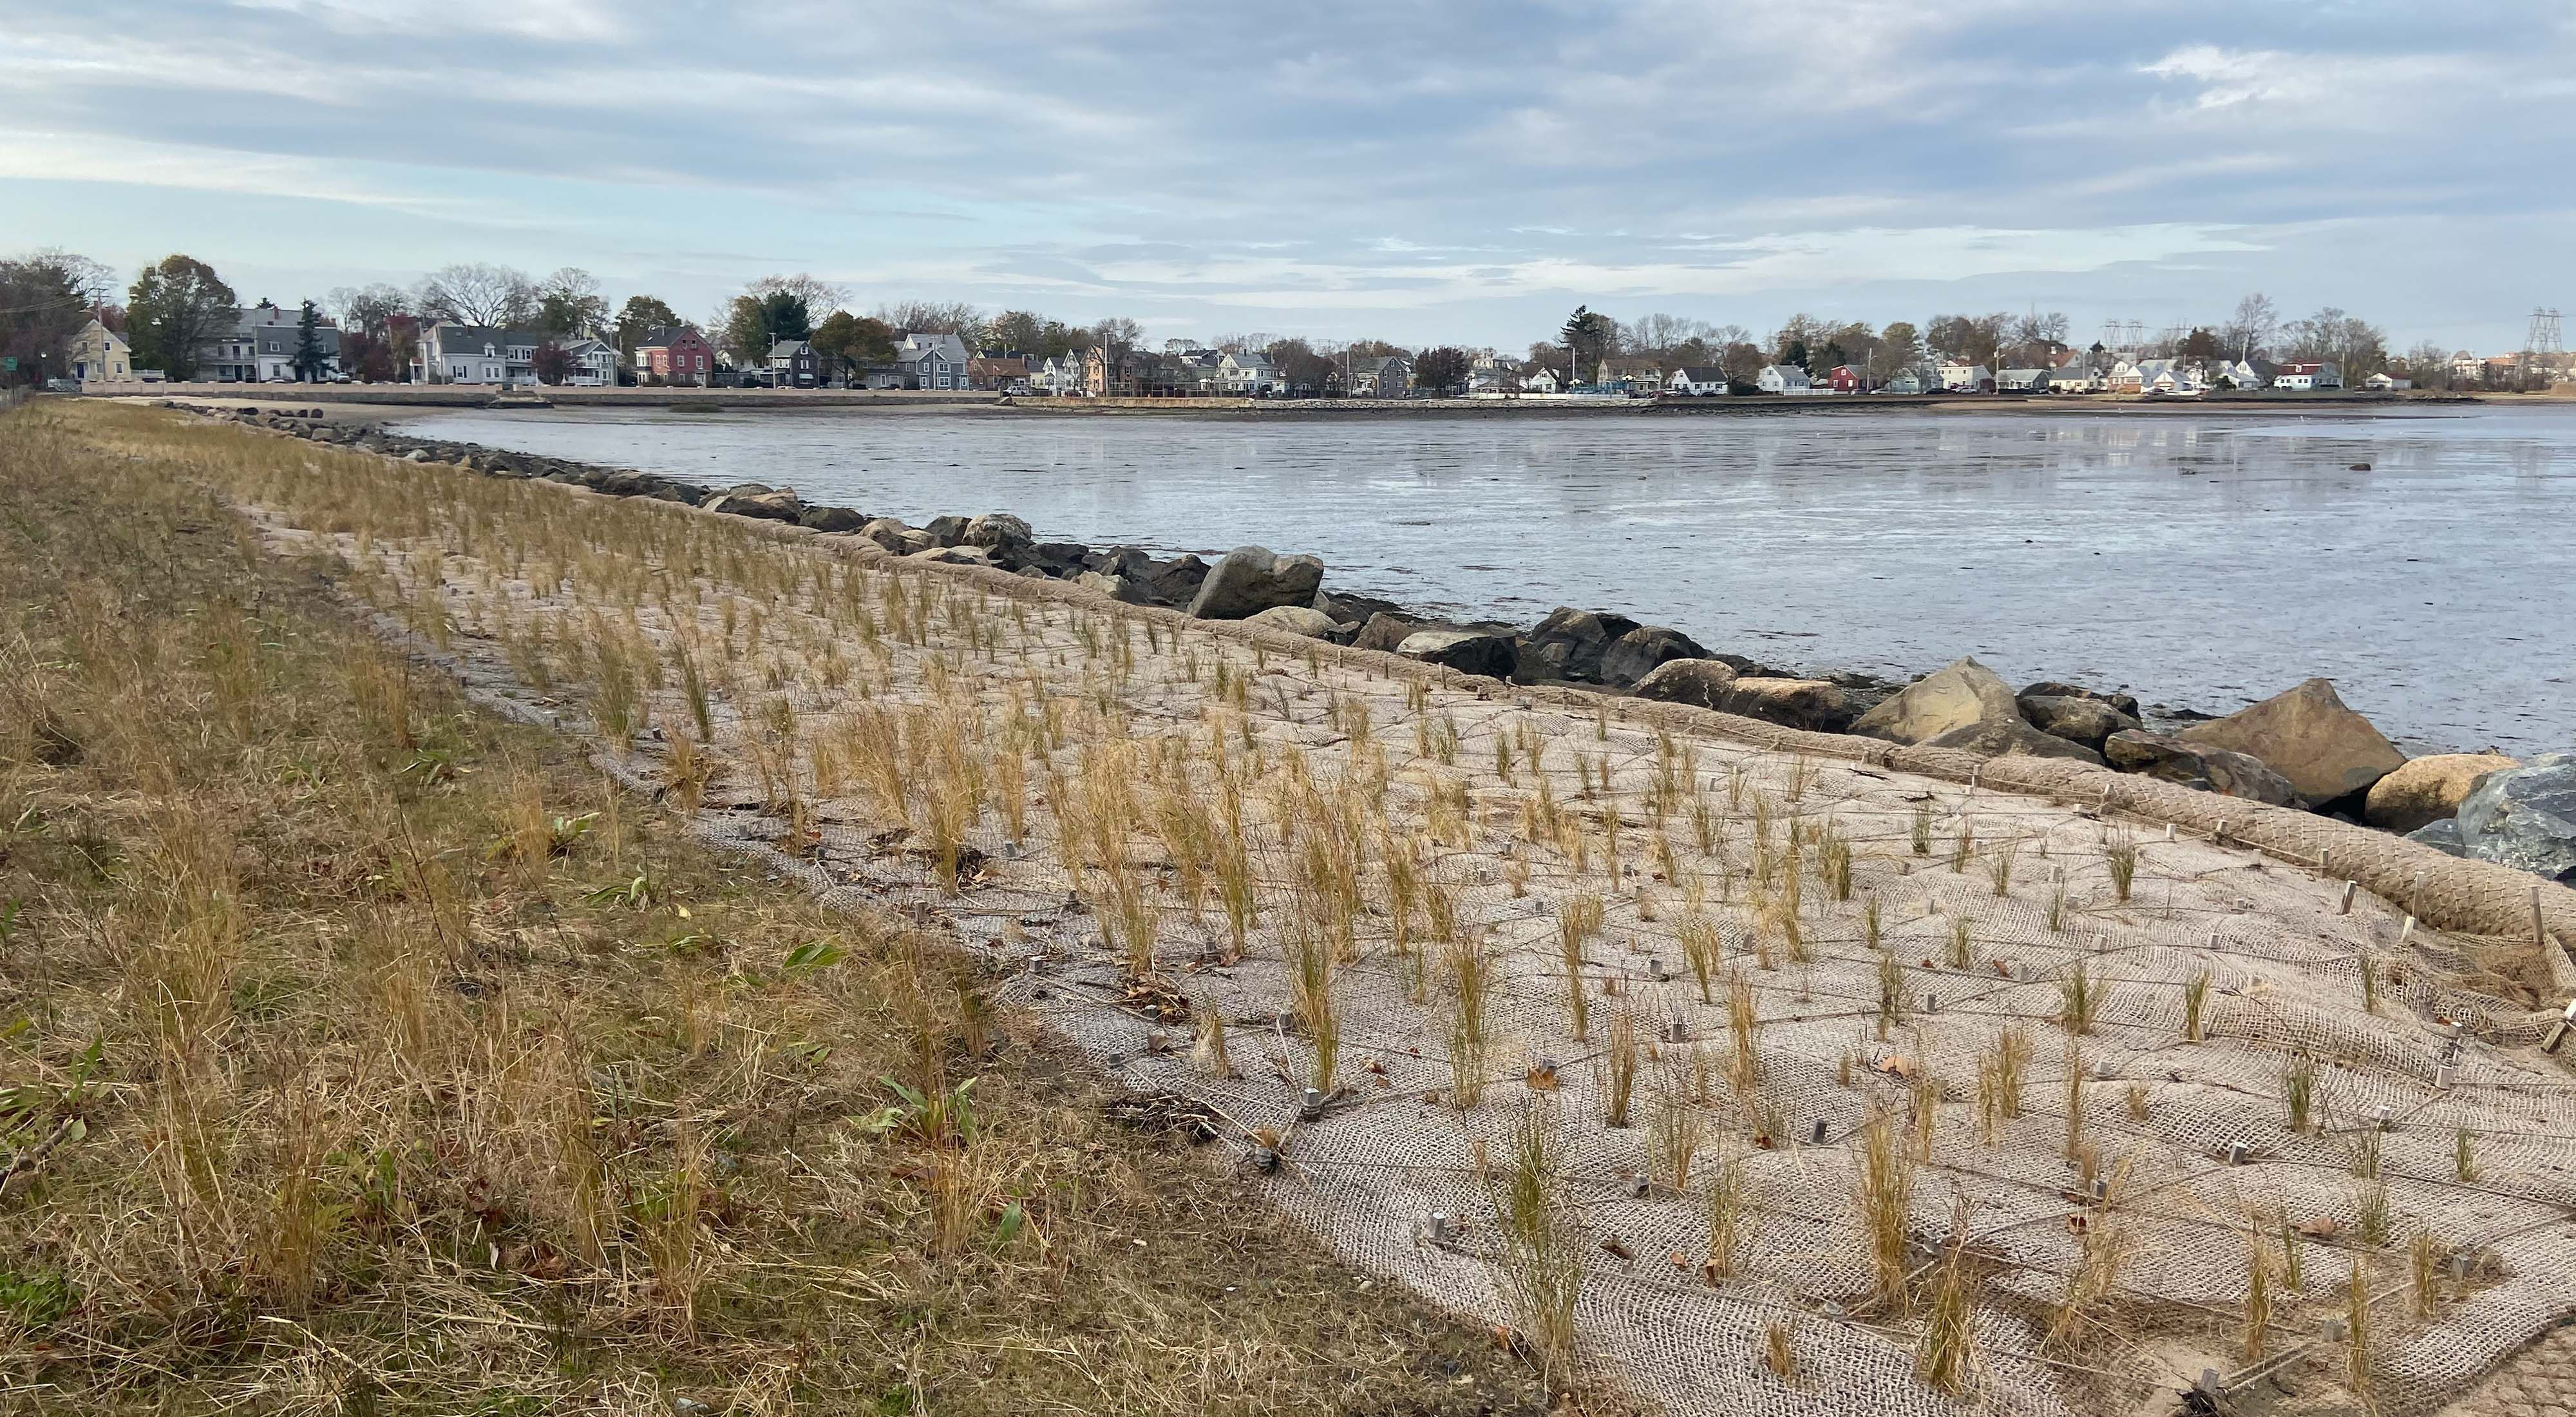 Shoreline along a bay in Salem, Massachusetts, with newly planted marsh grass in the foreground.